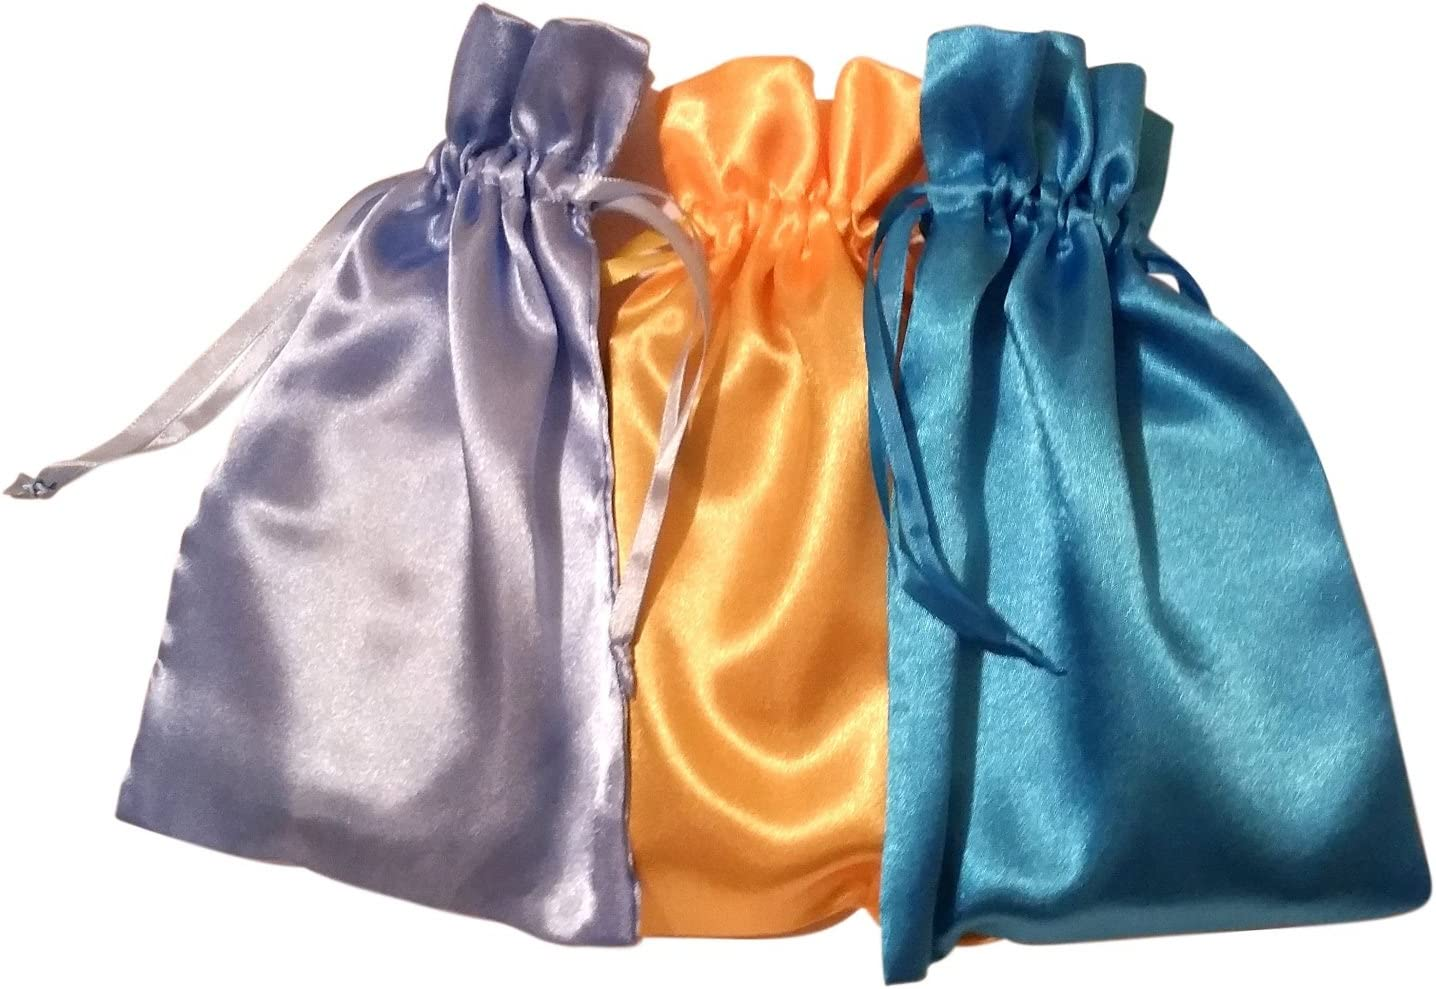 Vibrant Colors Satin Bundle of 3 Tarot Bags PAPERMART Turquoise Orange and Ruby Red 6 X 9 Each